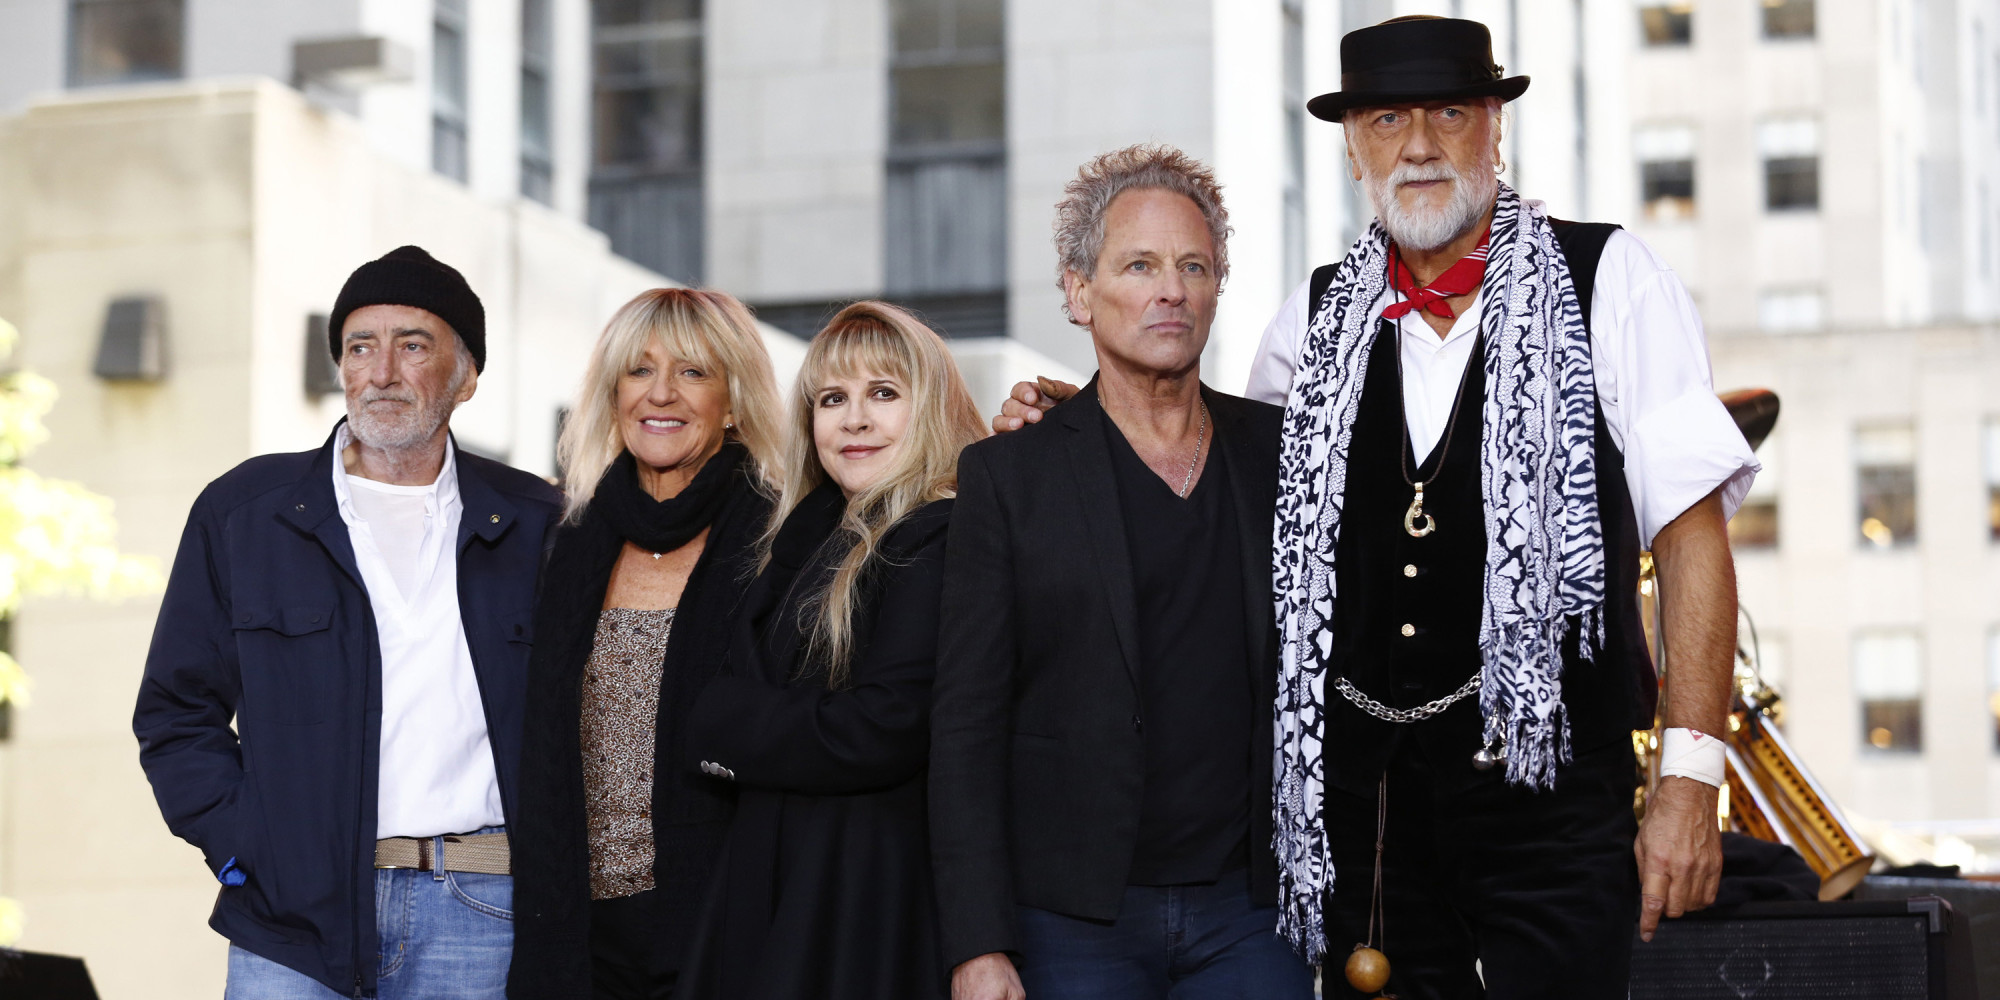 25 True Stories About Fleetwood Mac You Probably Didnt Know